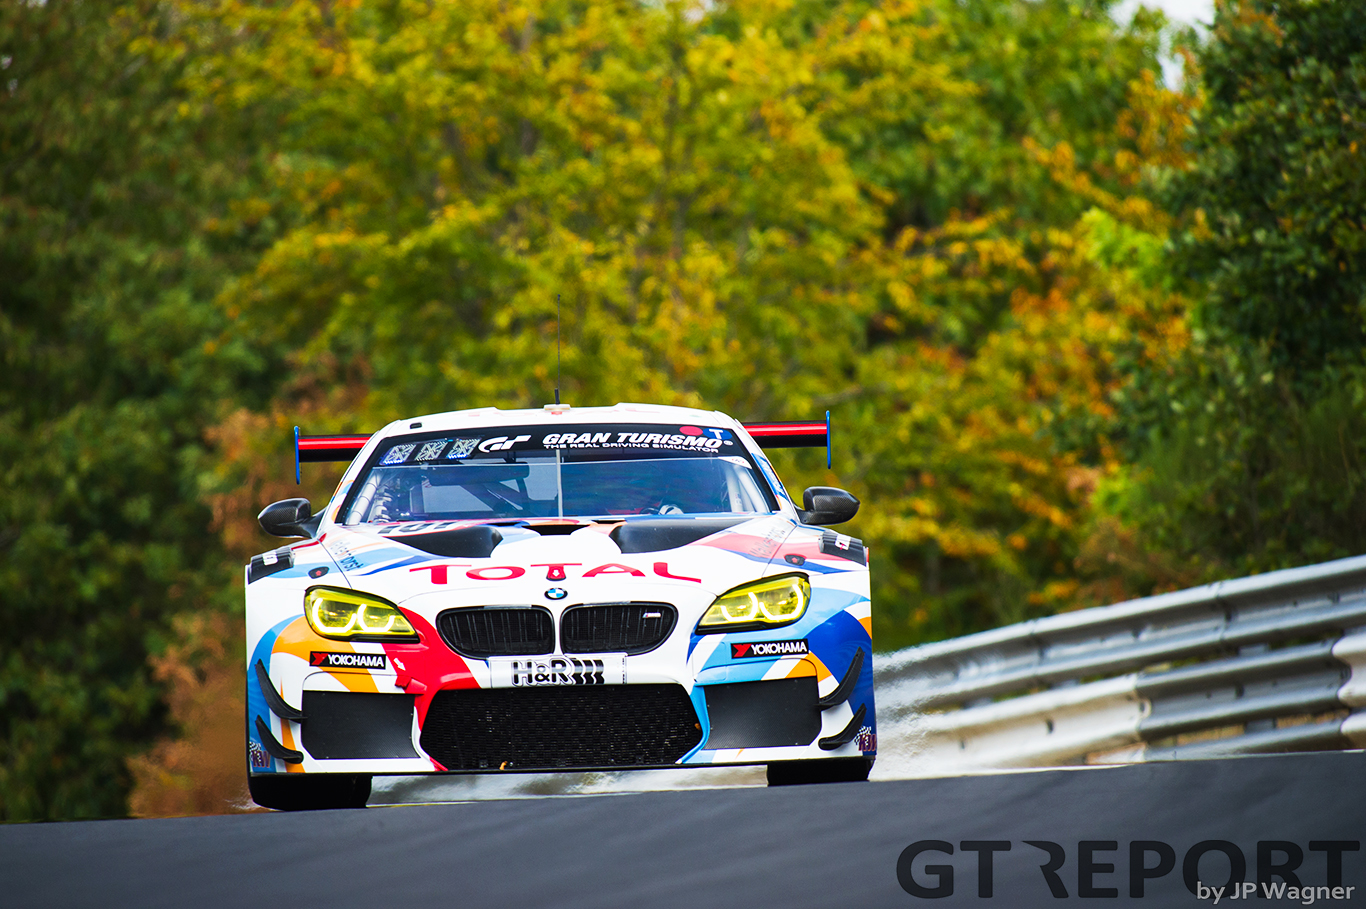 Nürburgring 24 Hours driver report: David Pittard – Qualifying